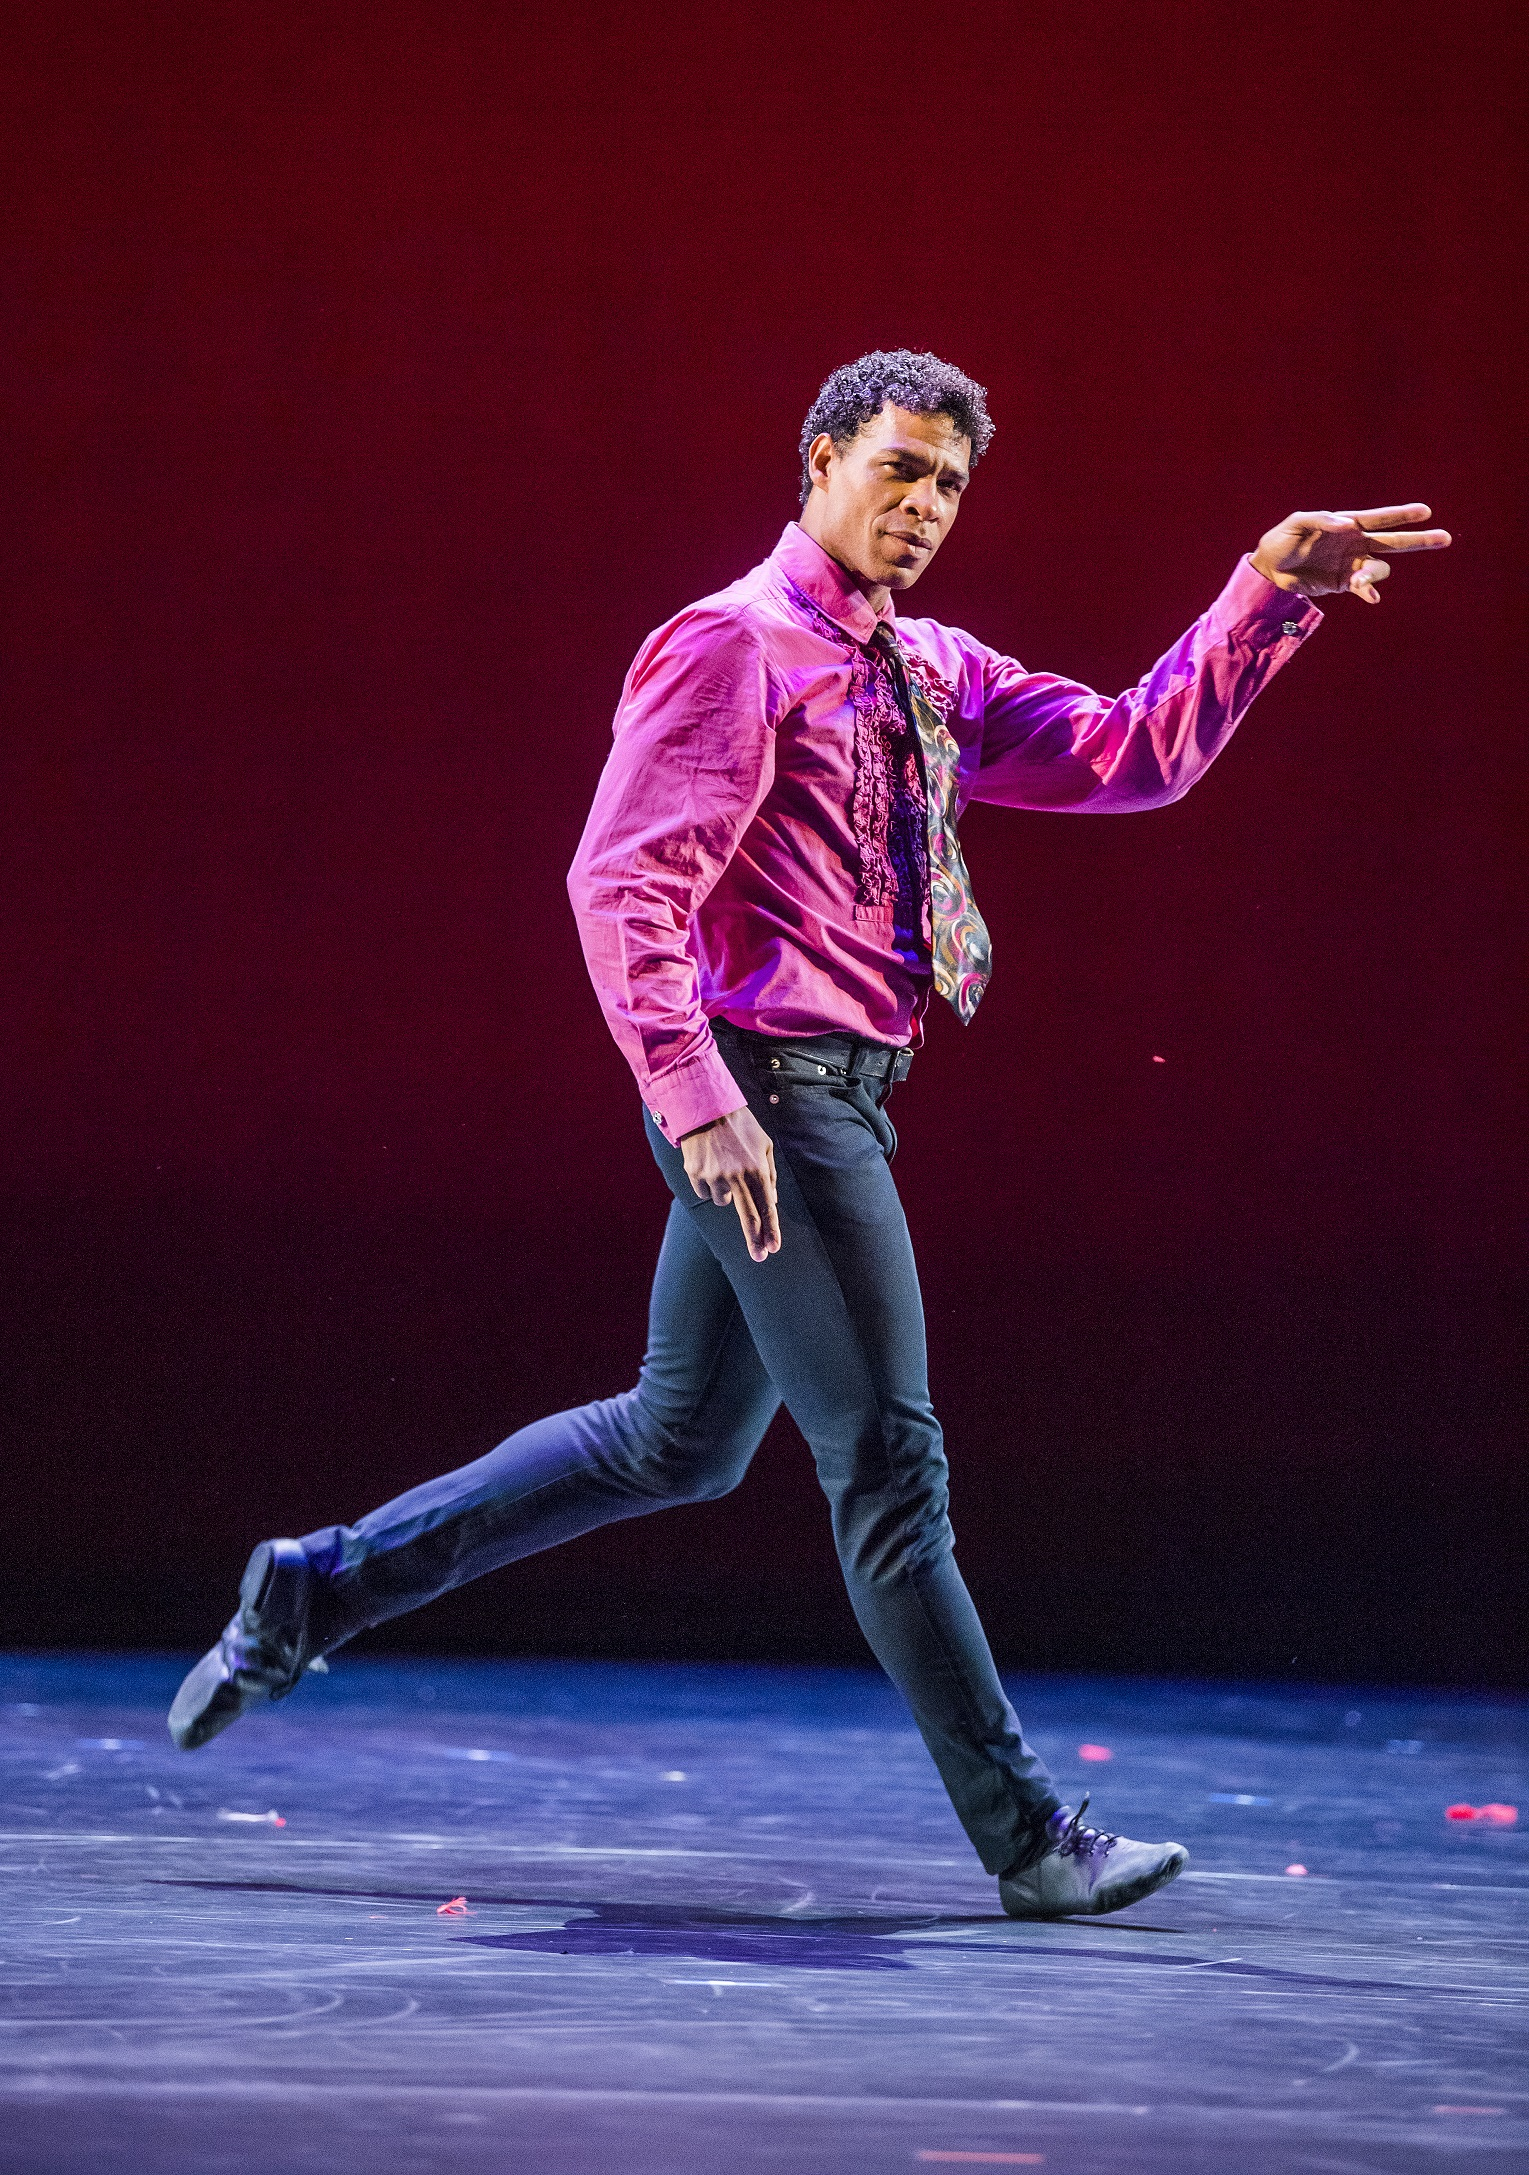 3 Carlos Acosta - A Celebration at the Royal Albert Hall 2 to 5 October 2018 Credit Tristram Kenton